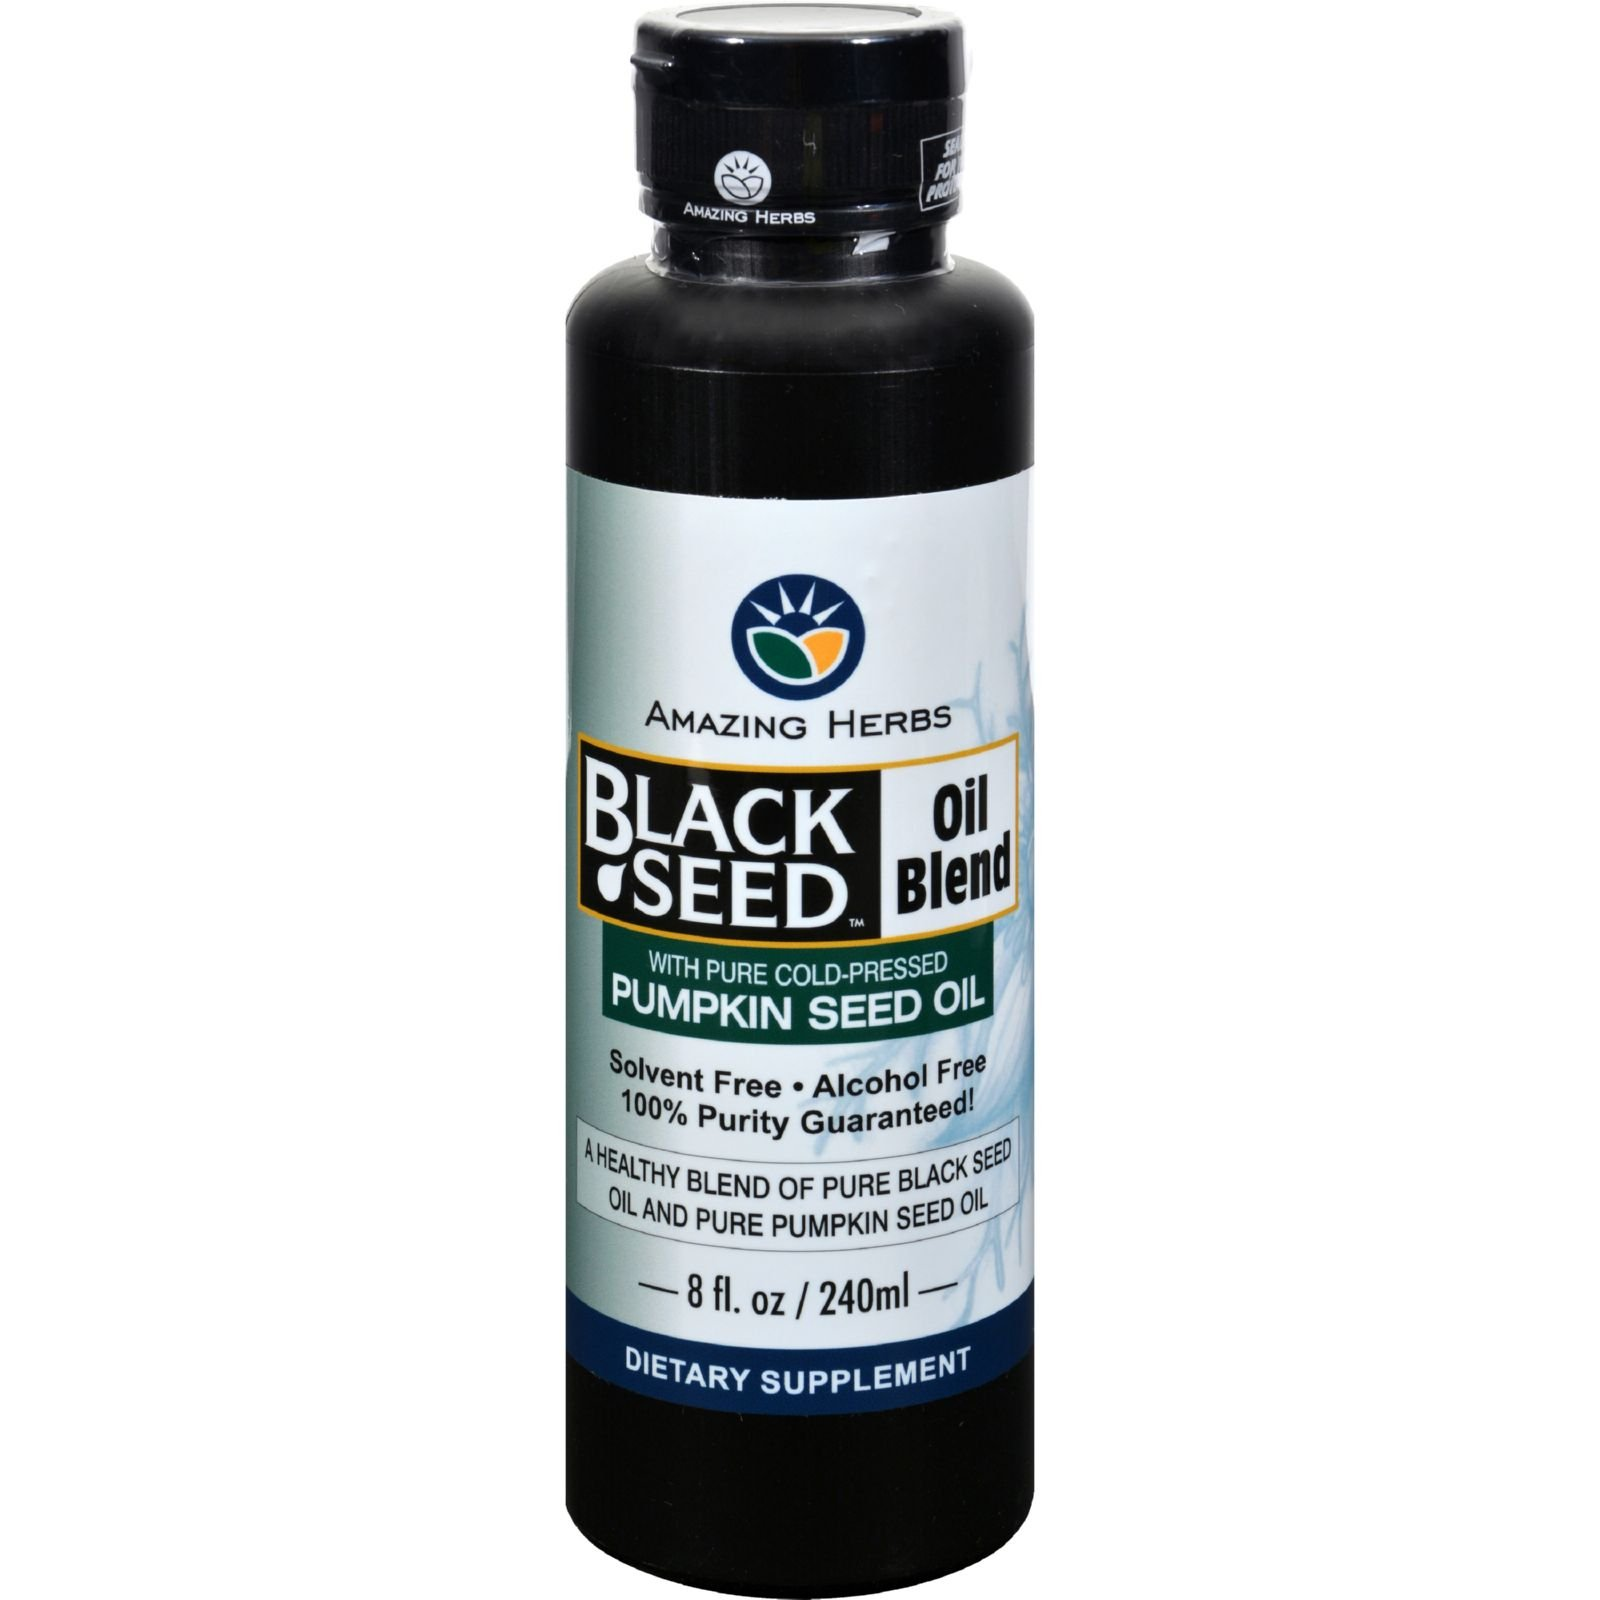 Amazing Herbs Black Seed Oil Blend - Styrian Pumpkin Seed - Excellent for Prostate Health - With EFAs and Nutrients for a Healthy Lifestyle - 8 oz (Pack of 3)